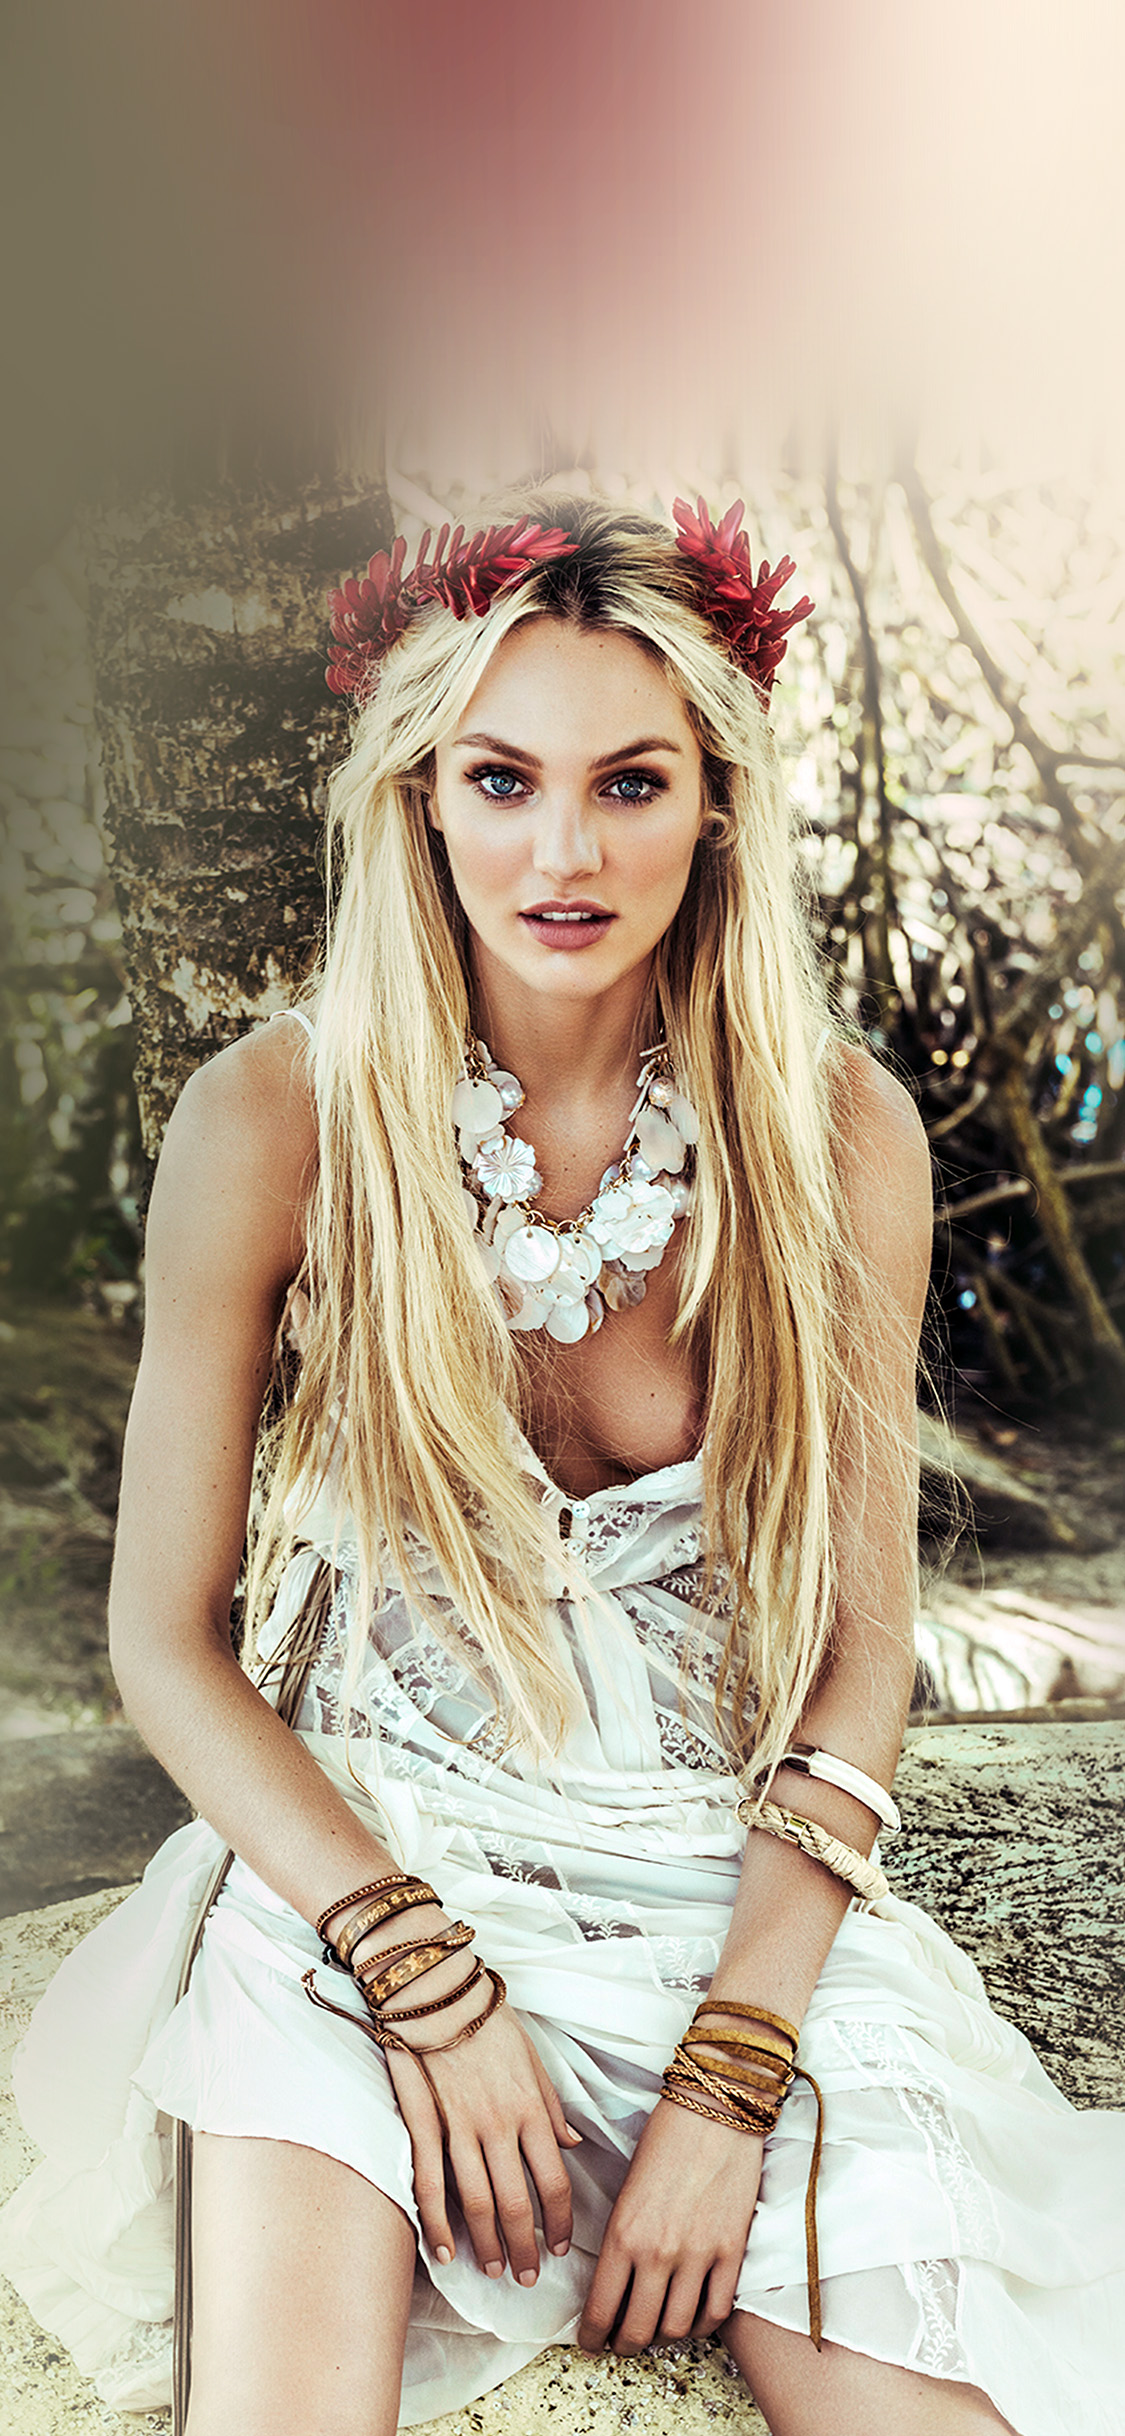 iPhonexpapers.com-Apple-iPhone-wallpaper-hp79-candice-swanepoel-model-victoria-girl